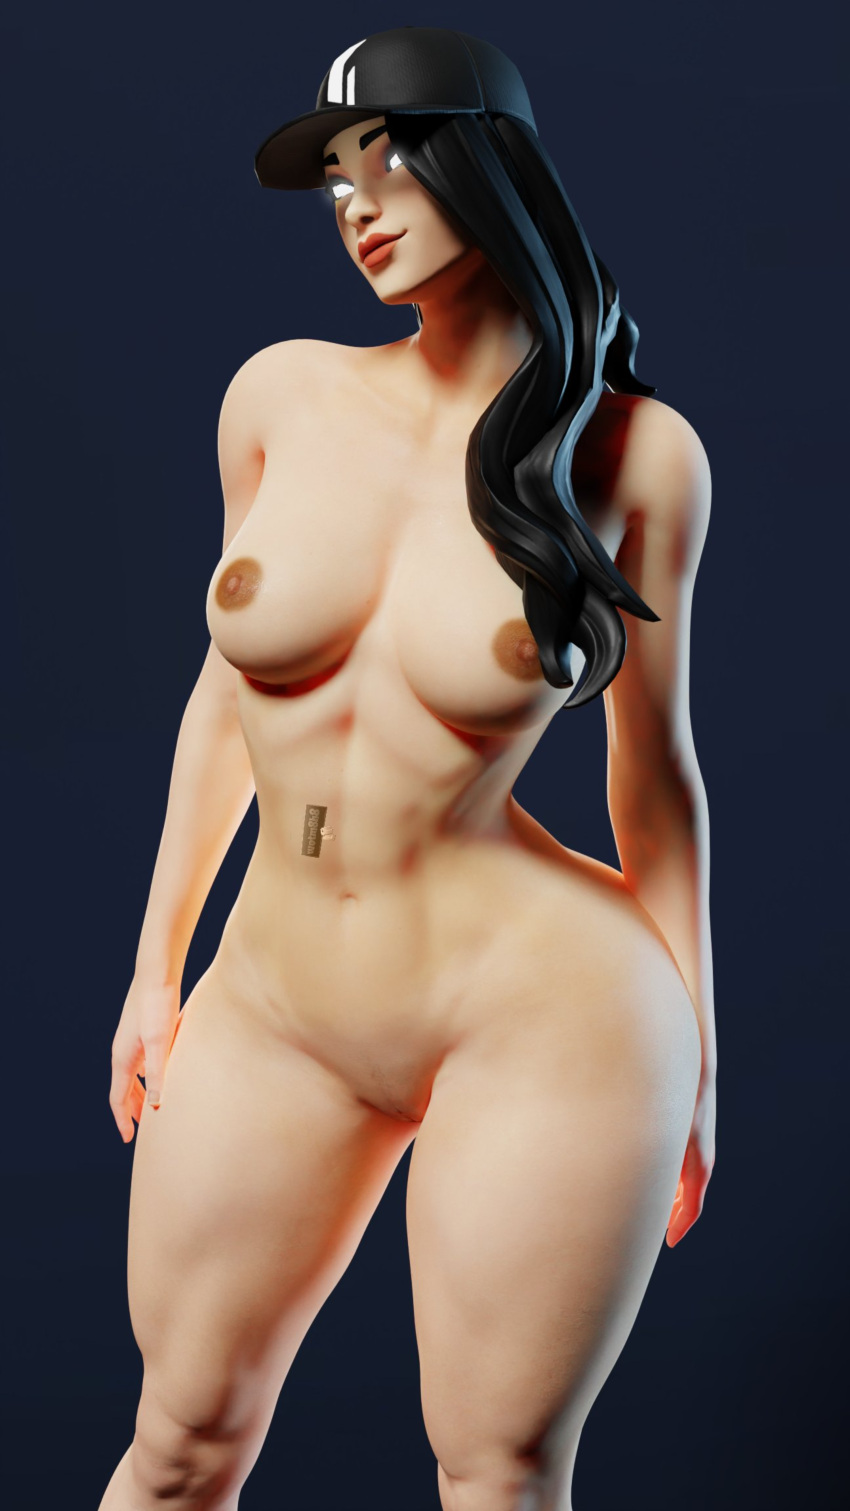 rubyshadows-hentai-art-–-ls,-artwork),-areolae,-female-only,-female,-wide-hips.